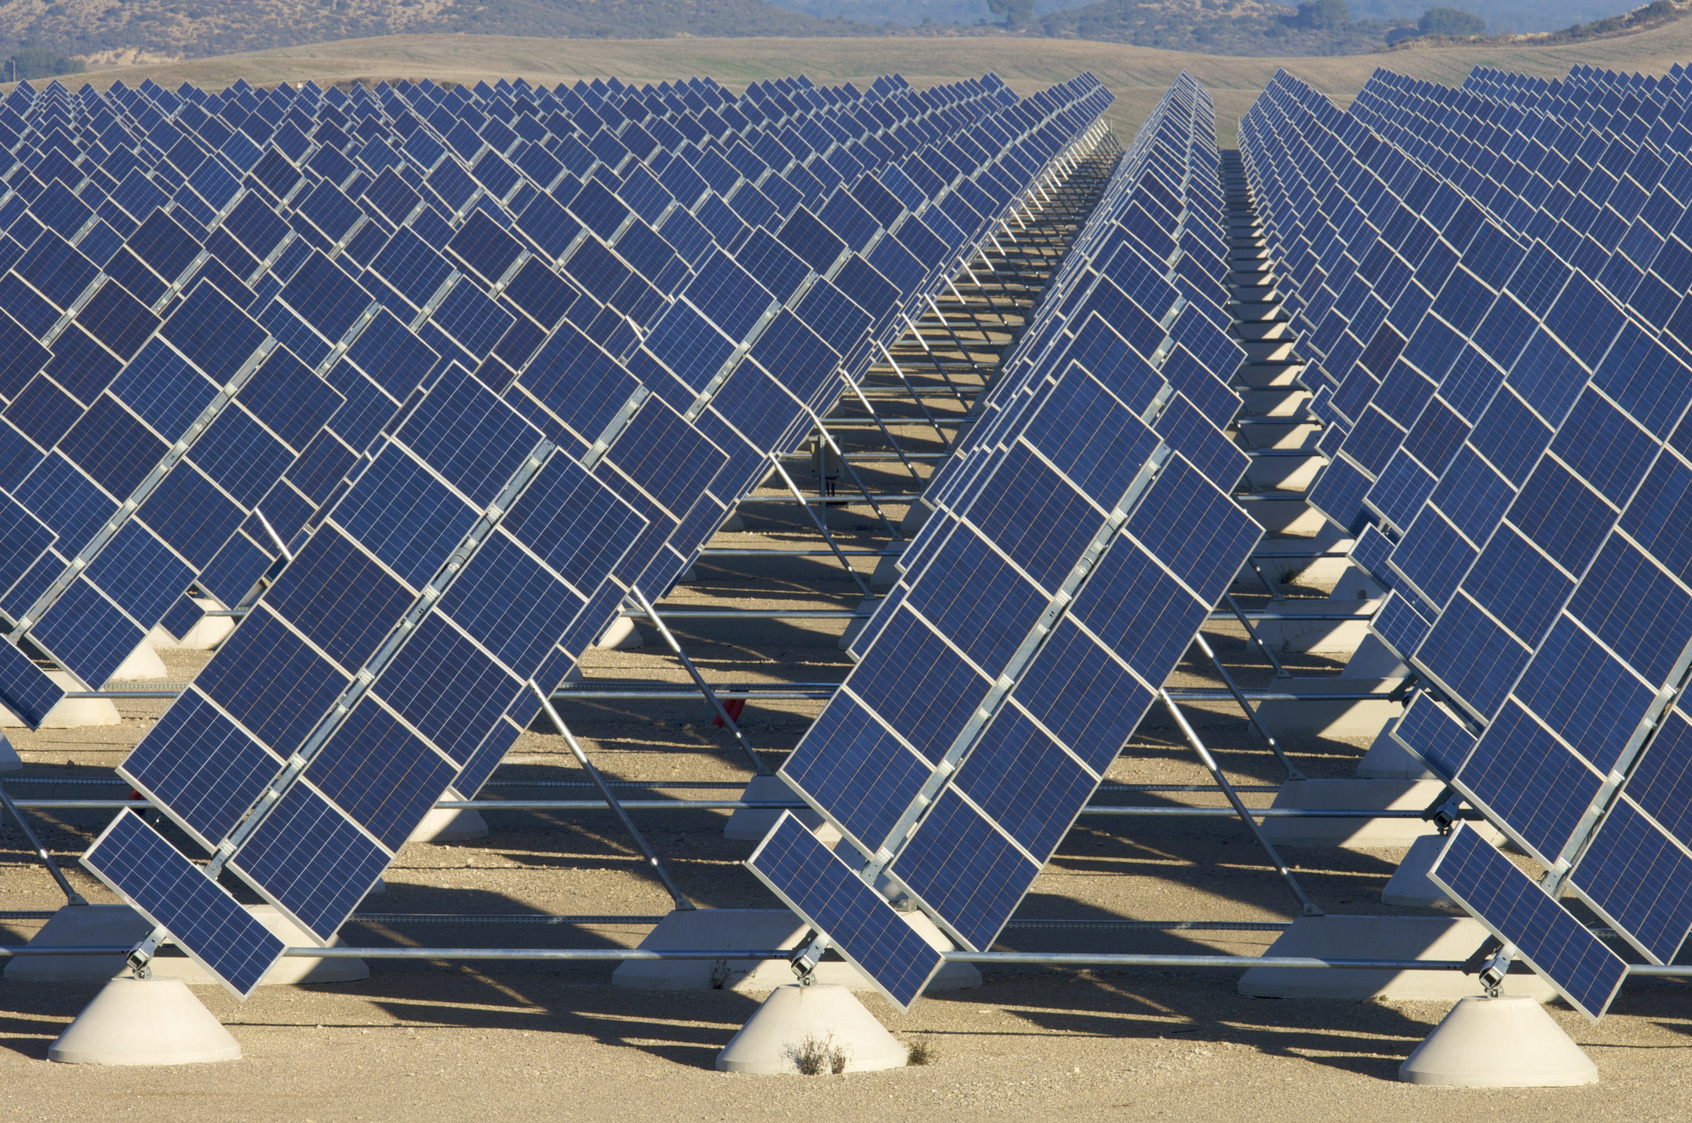 JinkoSolar Supplies METKA-EGN with 57 65 MW of PV Modules for Puerto